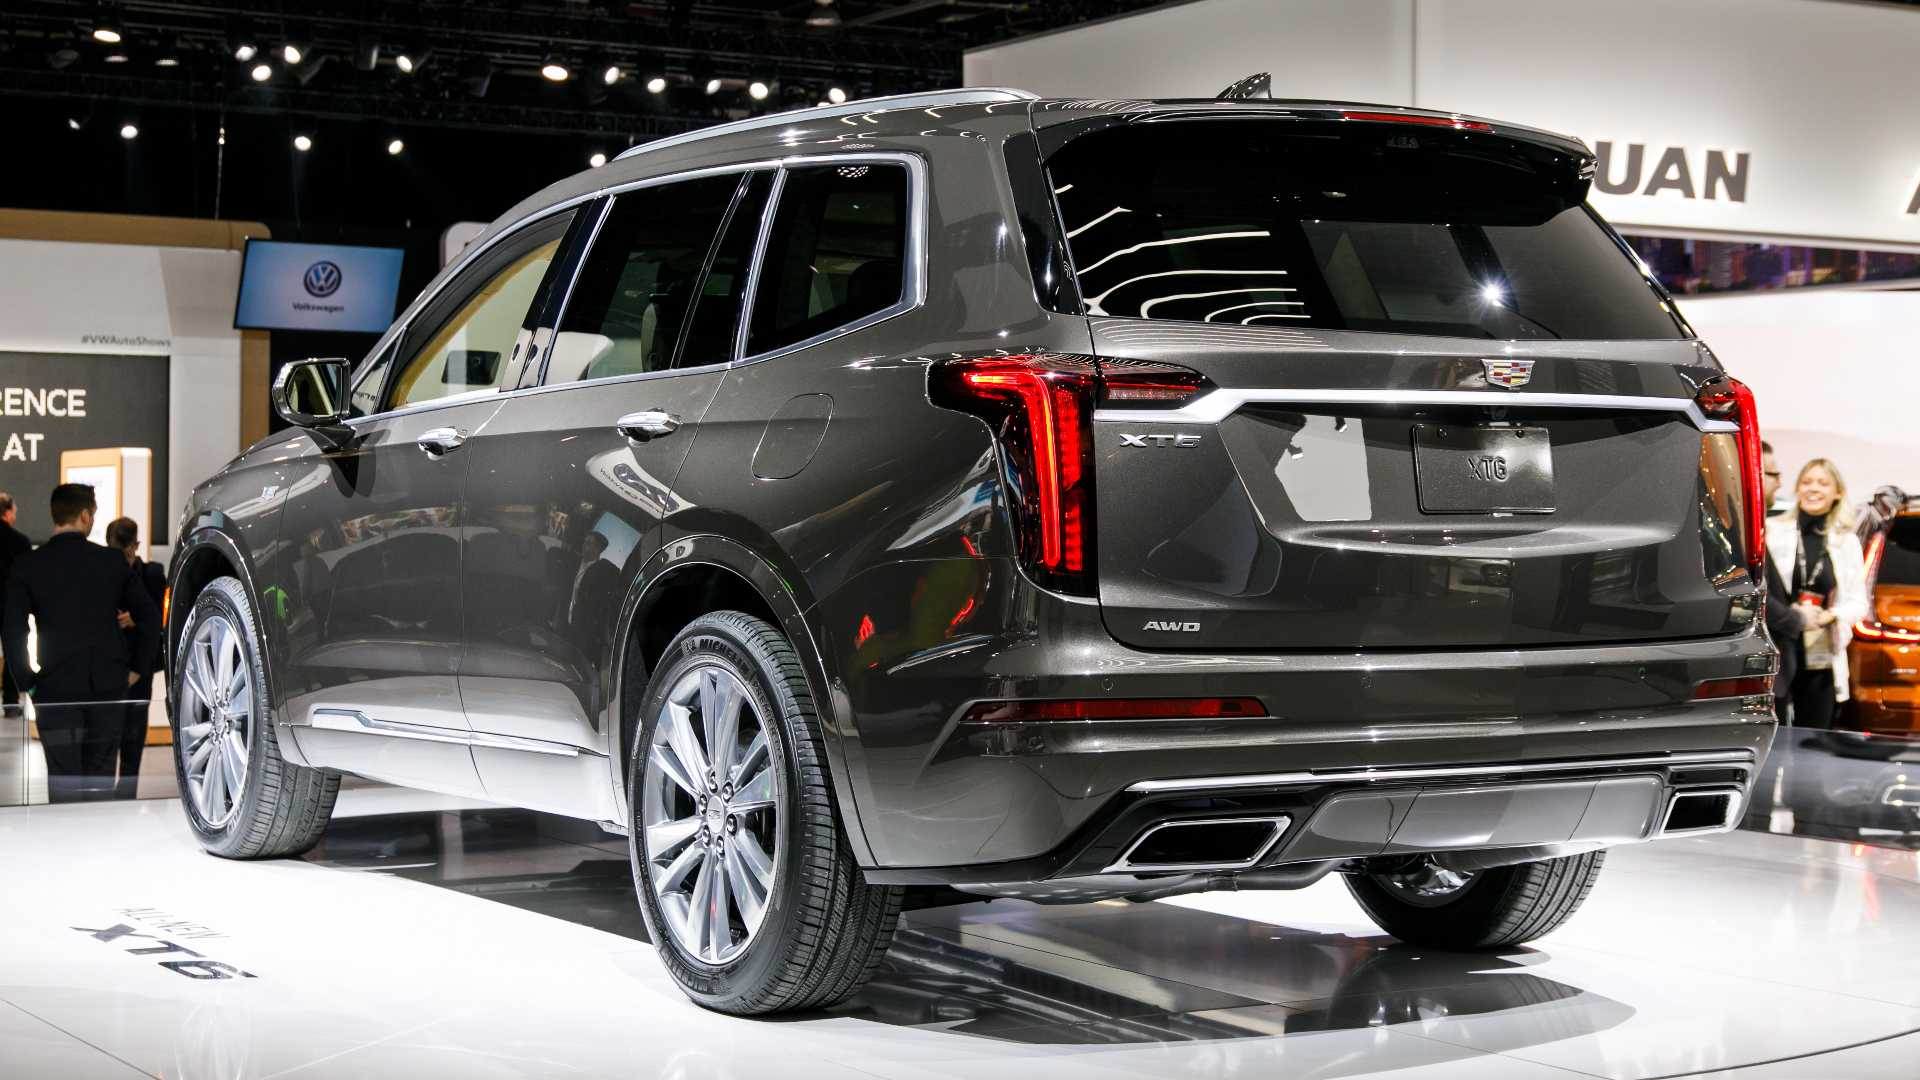 51 The Best 2020 Cadillac Xt6 Premium Luxury Concept And Review